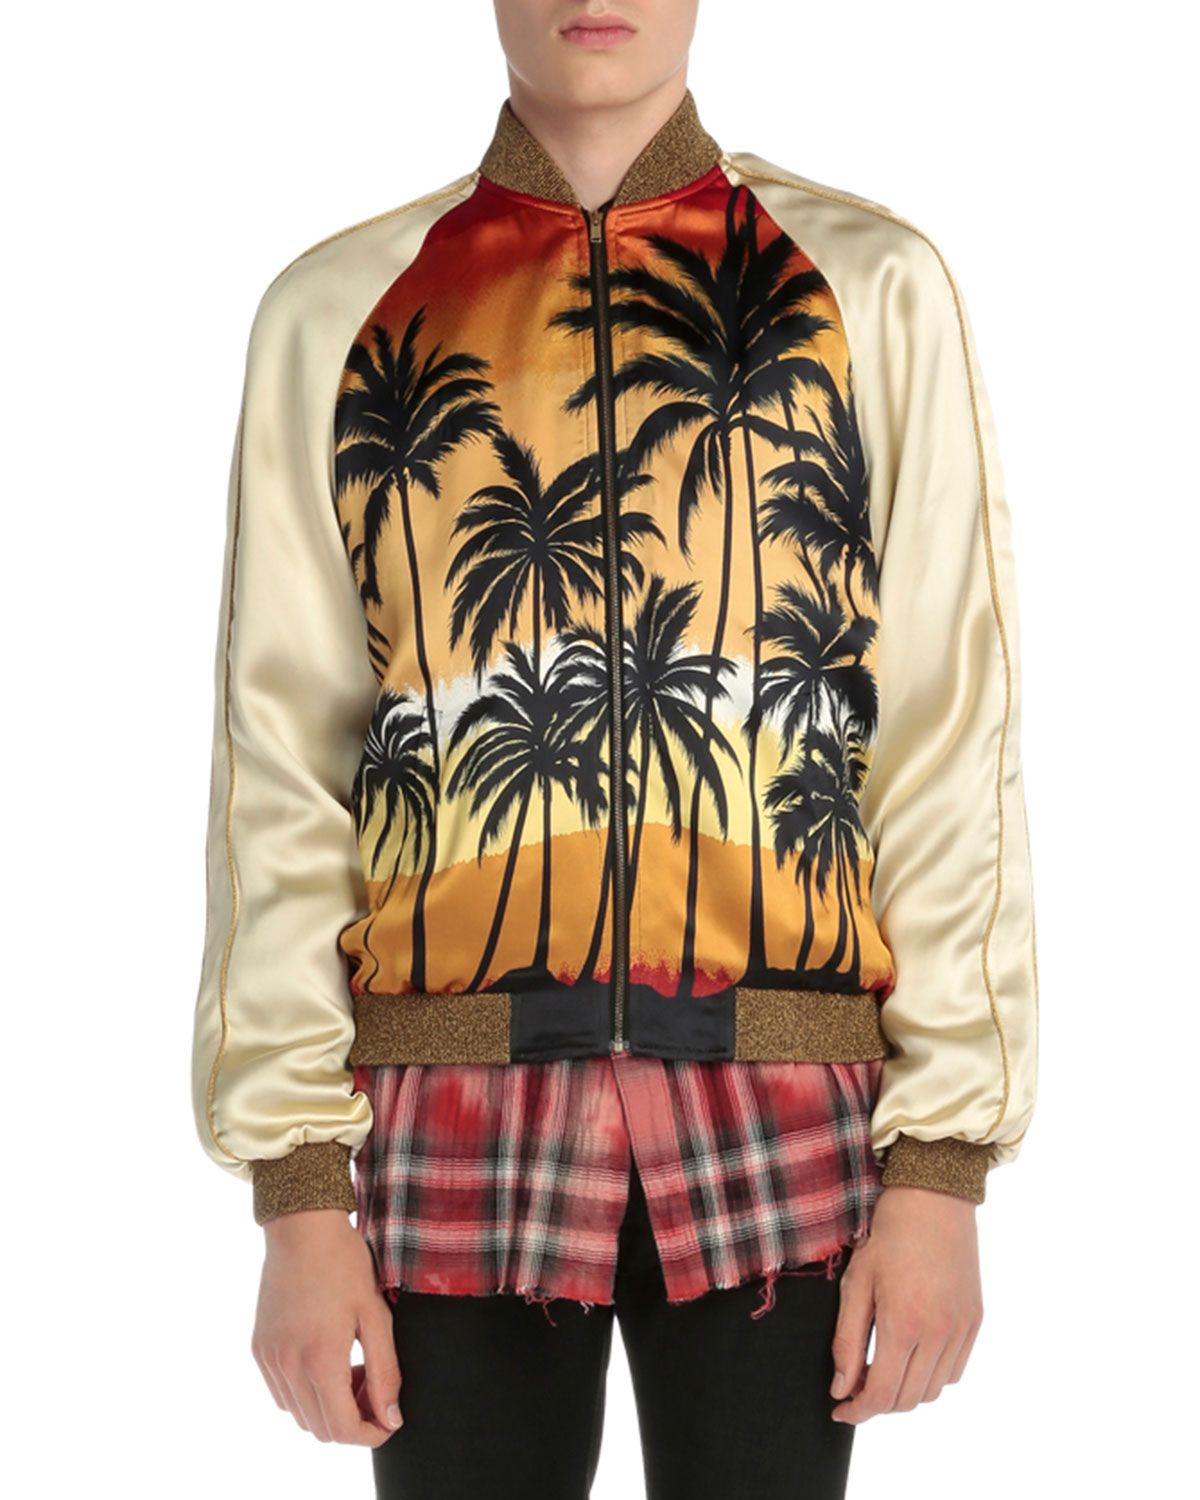 c7ee706d1af Yves Saint Laurent Palm Tree-Print Satin Bomber Jacket, Multi, Men's, Size:  50